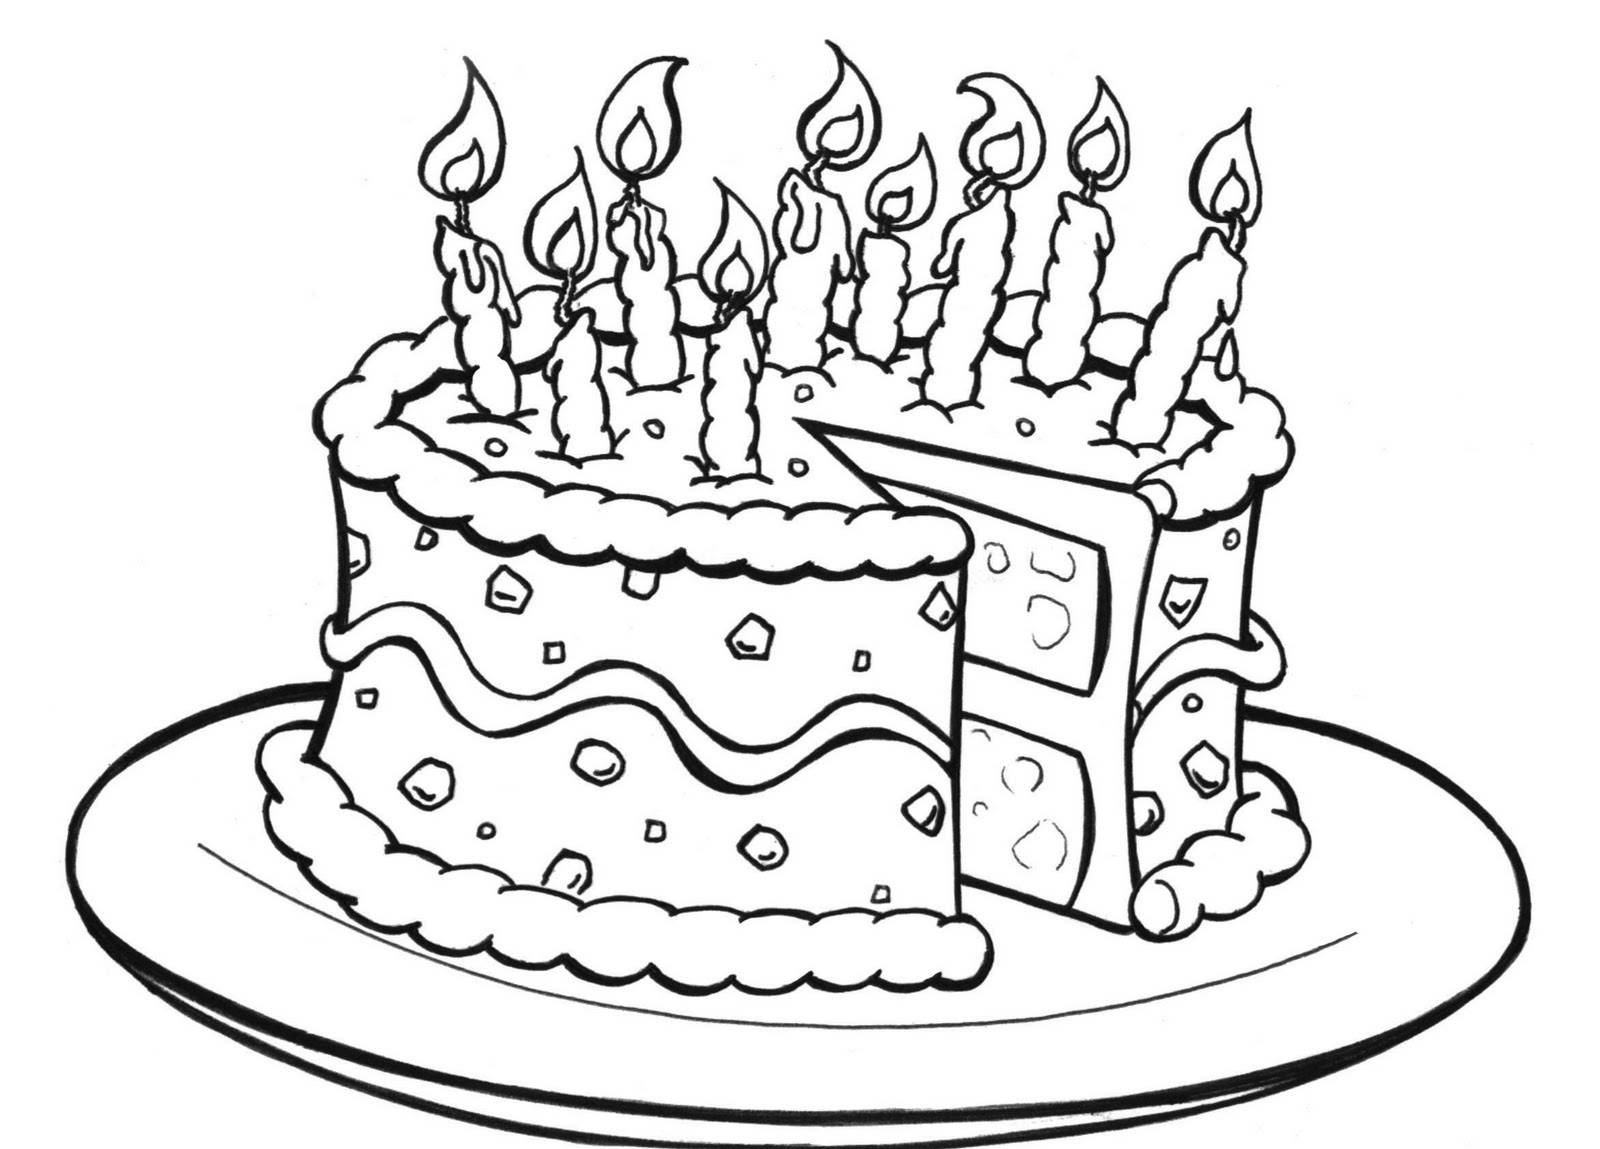 printable birthday coloring sheets ; free-printable-birthday-cake-coloring-pages-for-kids